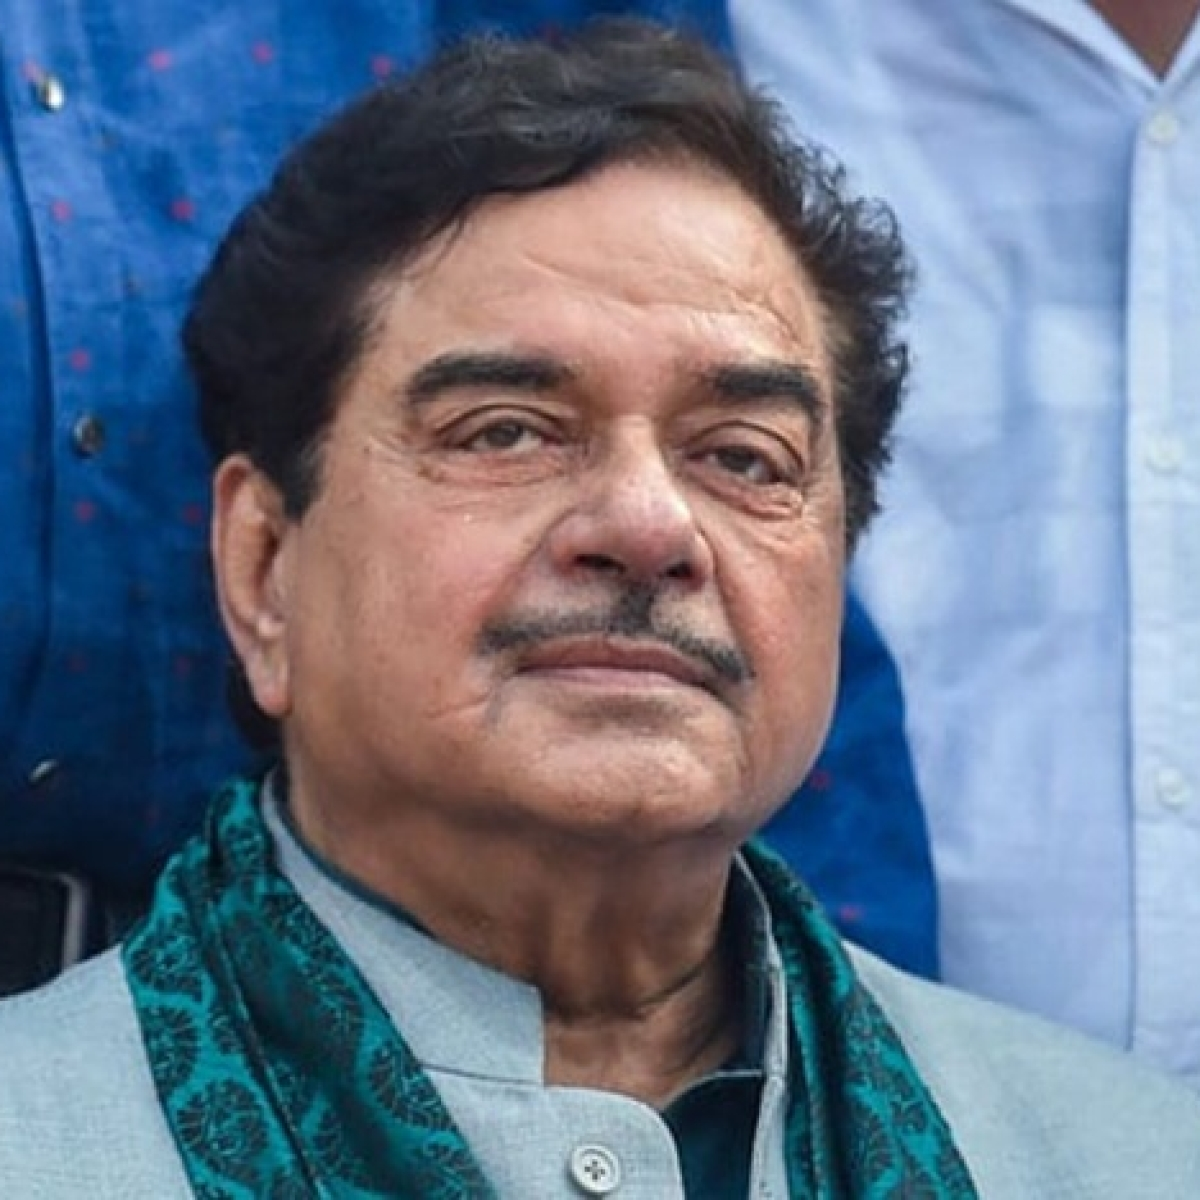 'Appalled' by Navjot Singh Sidhu's resignation, says Congress leader Shatrughan Singha